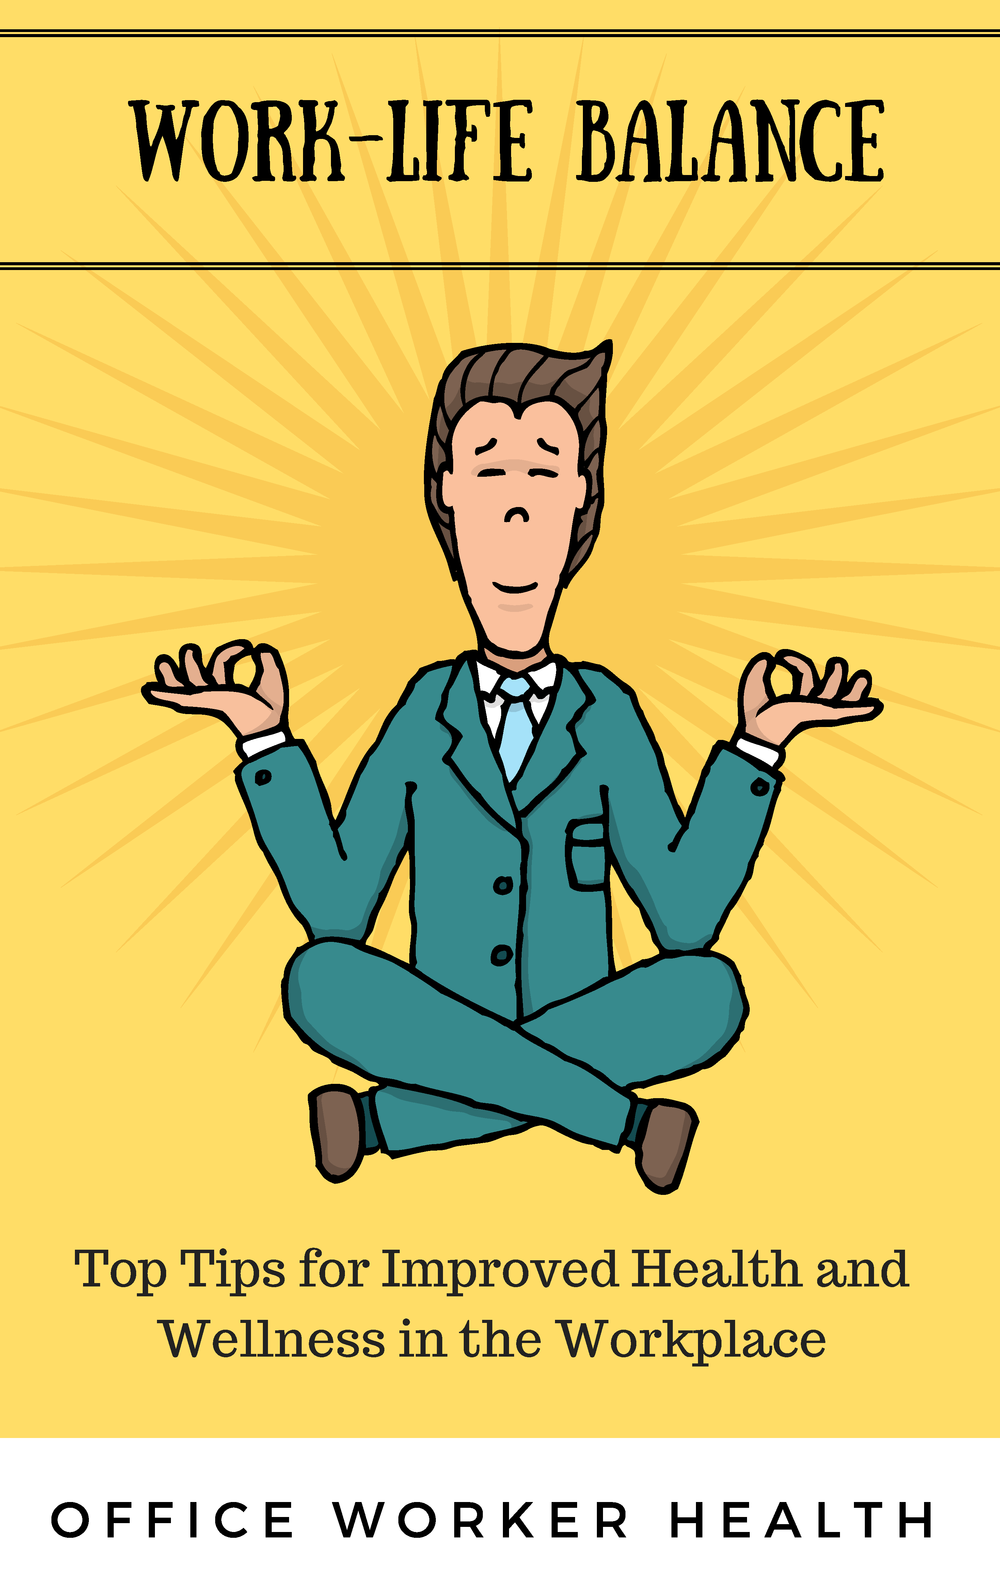 Work_Life_Balance_Top_Tips_ford_Wellness_in_the_Workplace.01 1.png